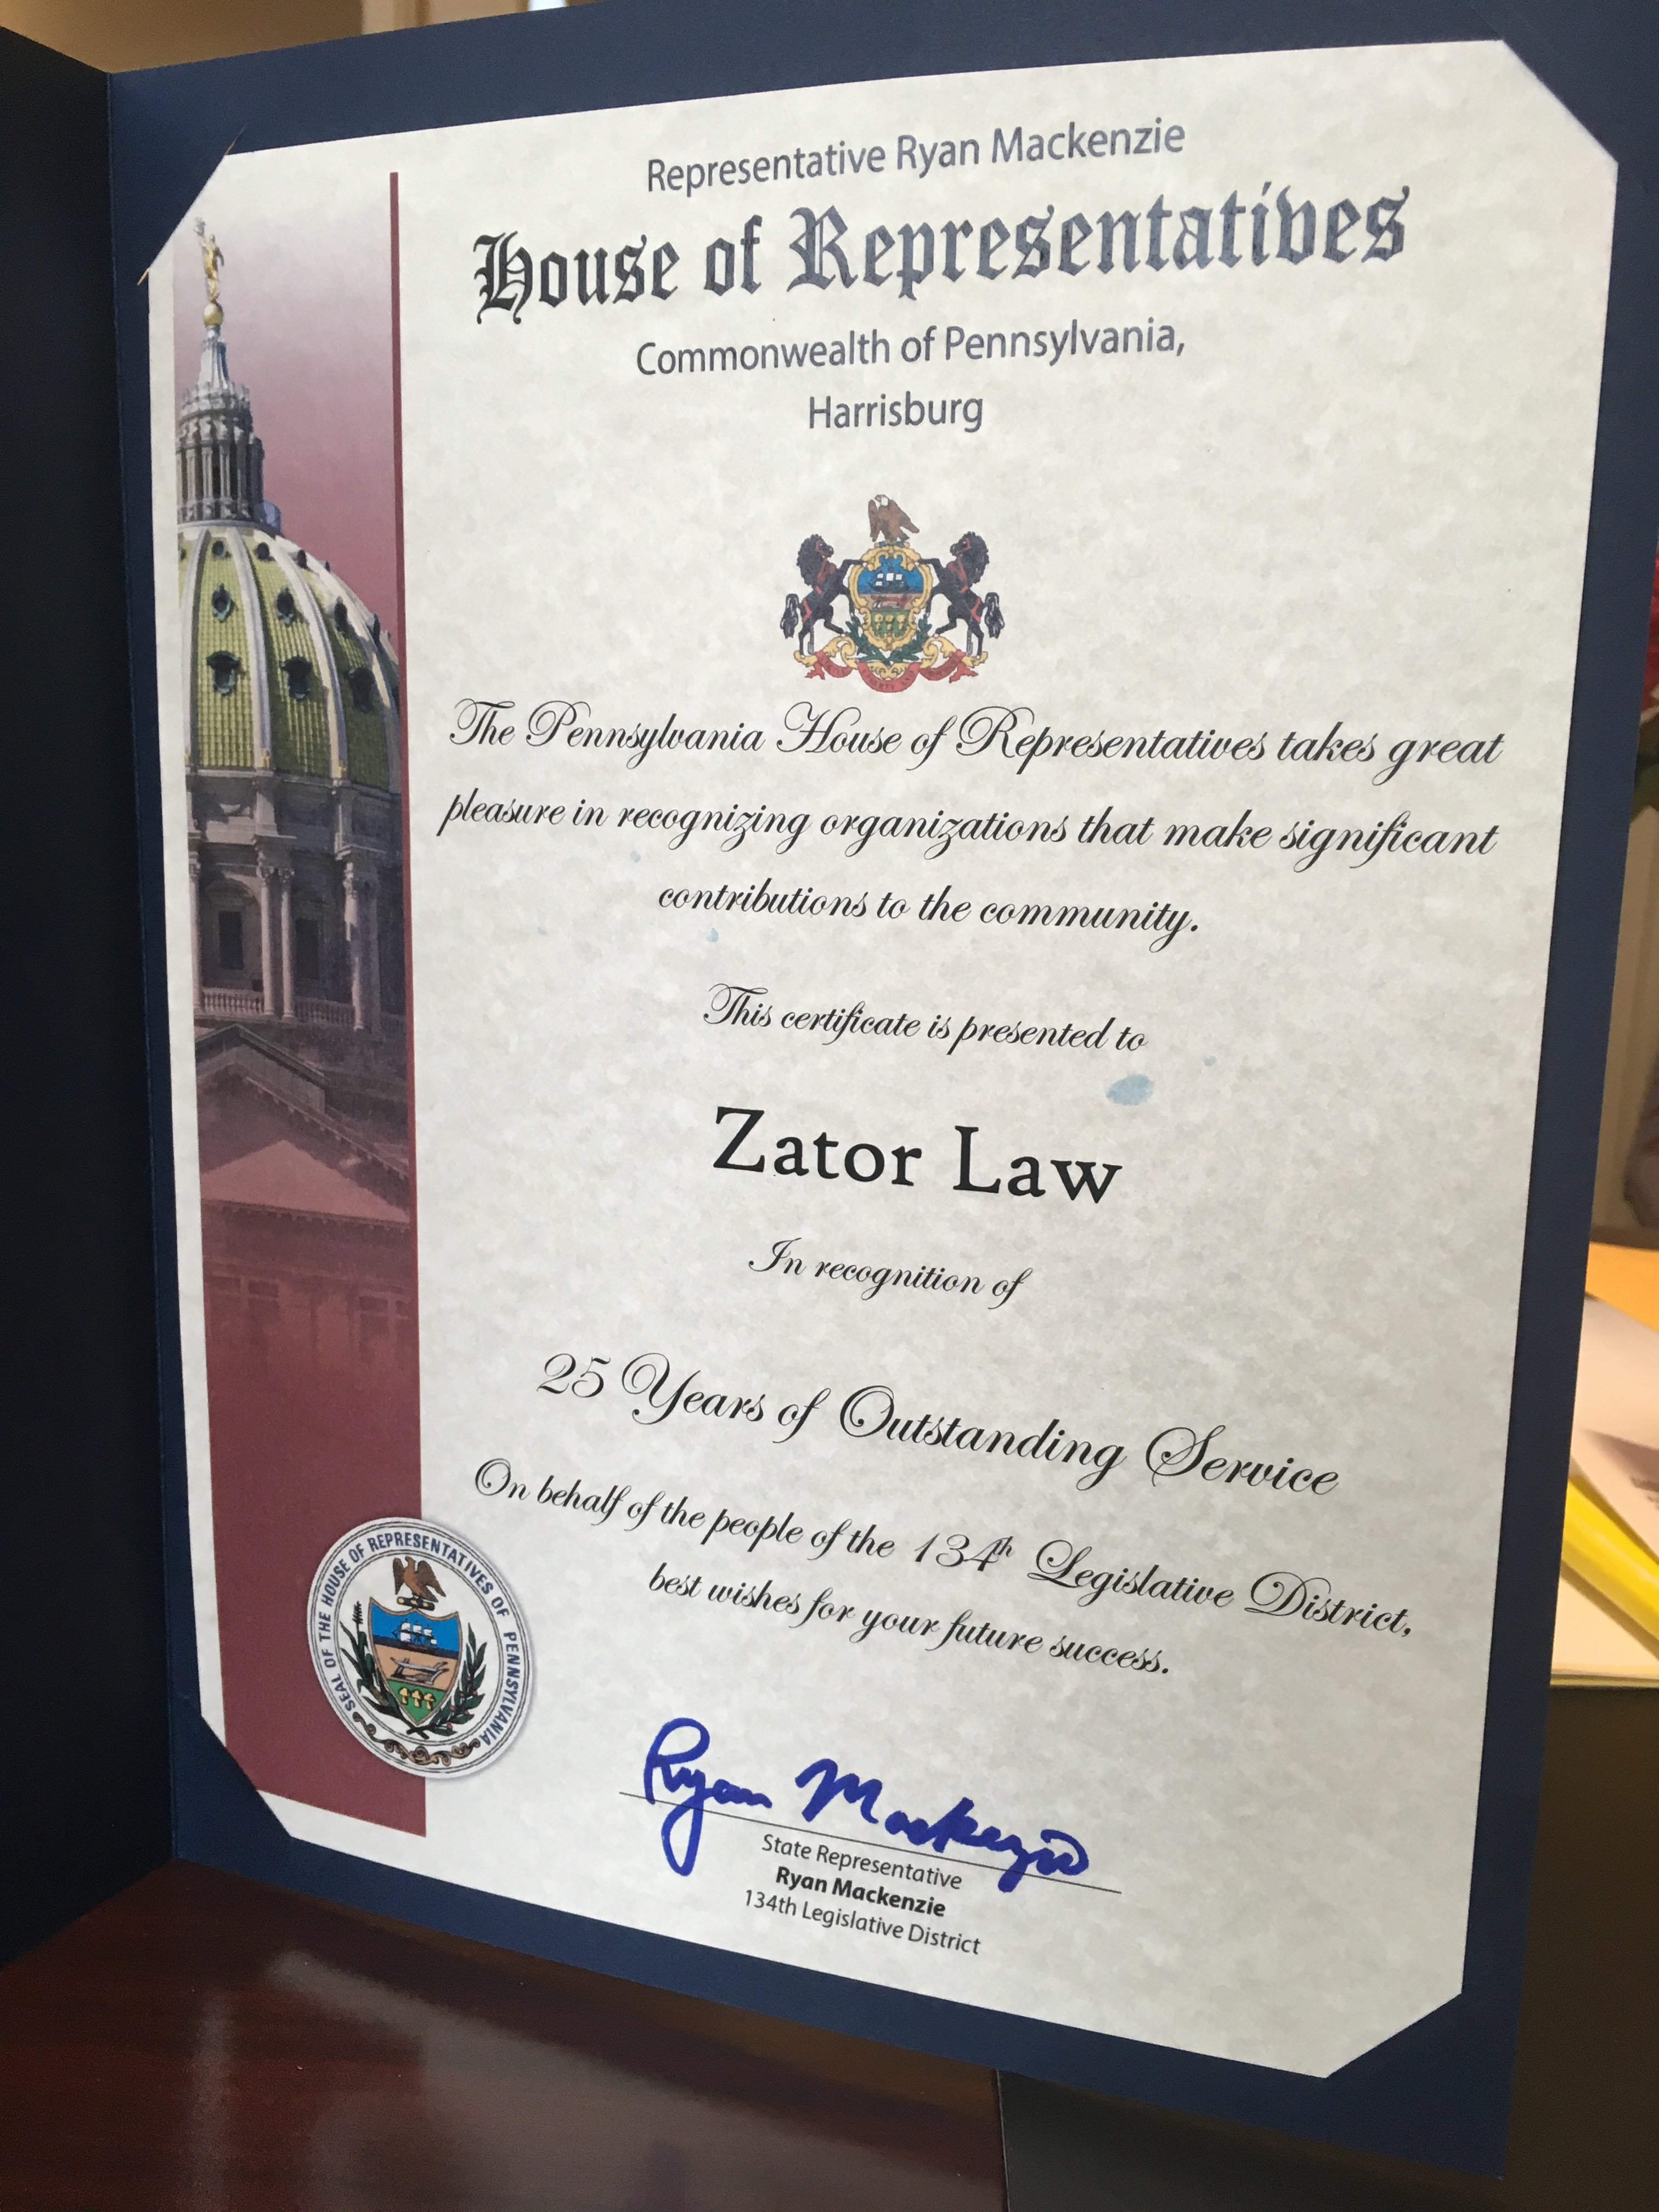 PA House Recognizes Zator Law for 25 years of Service